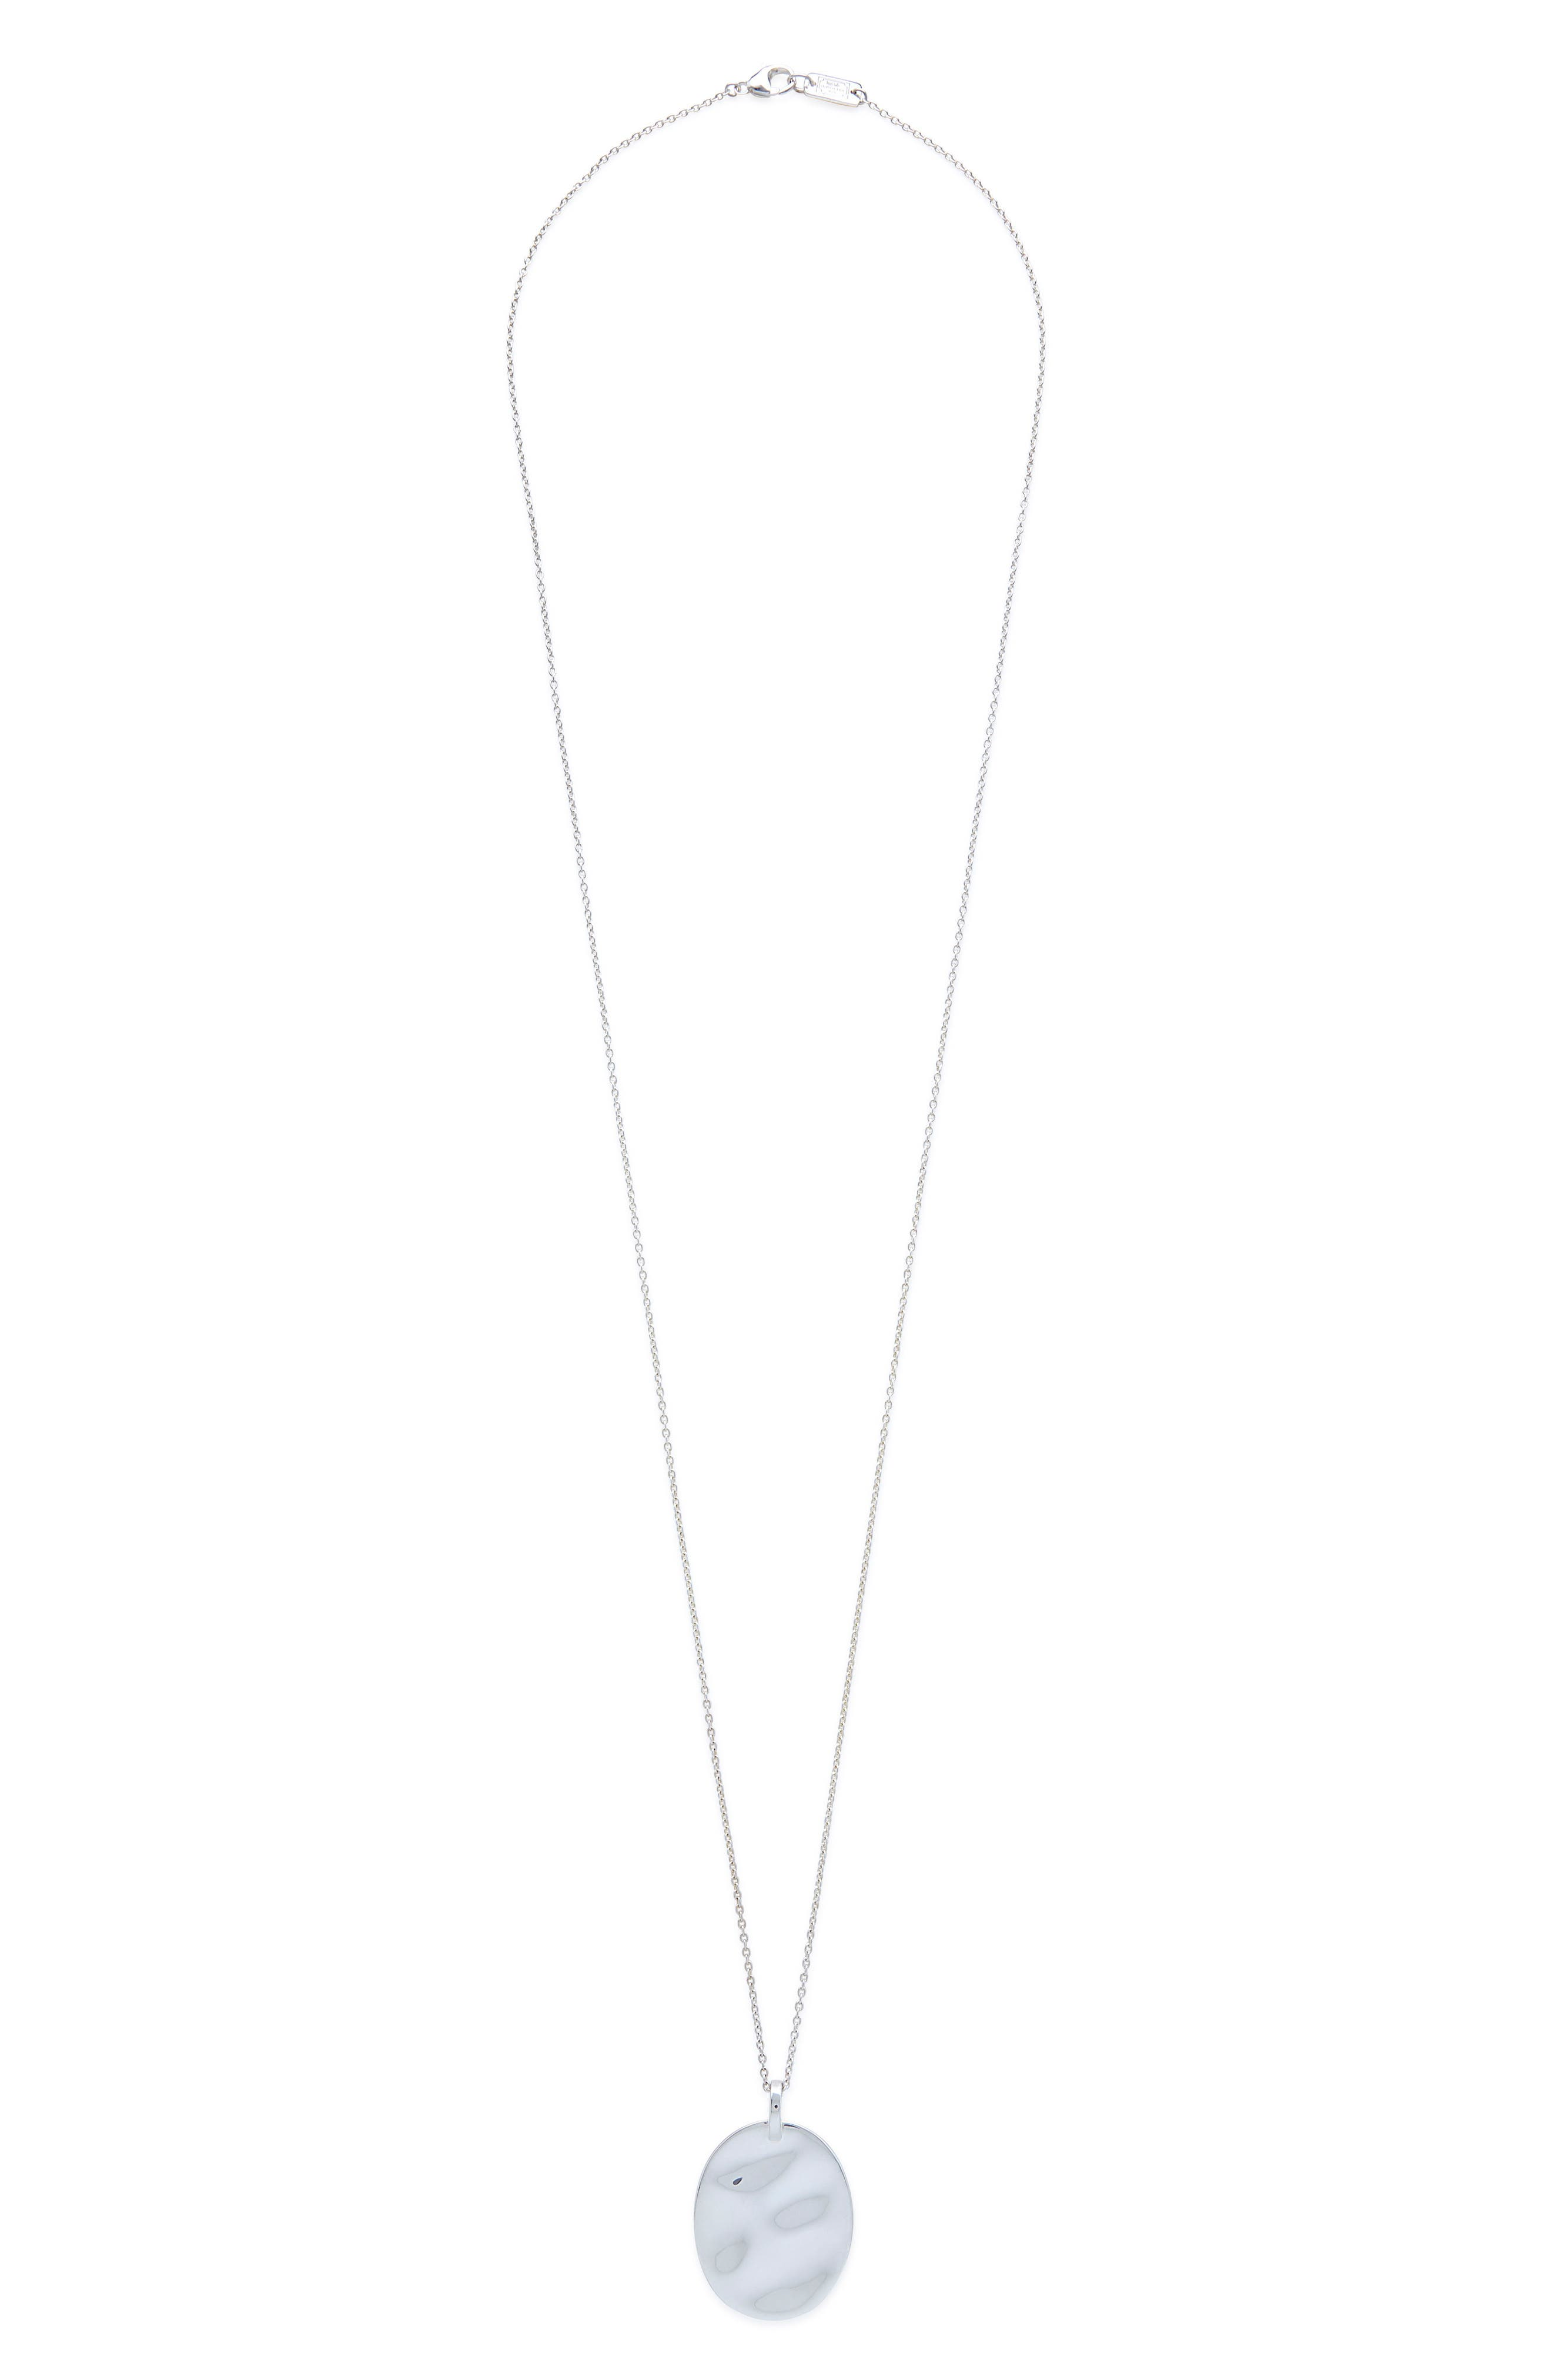 Ippolita Senso Connected Pendant Necklace